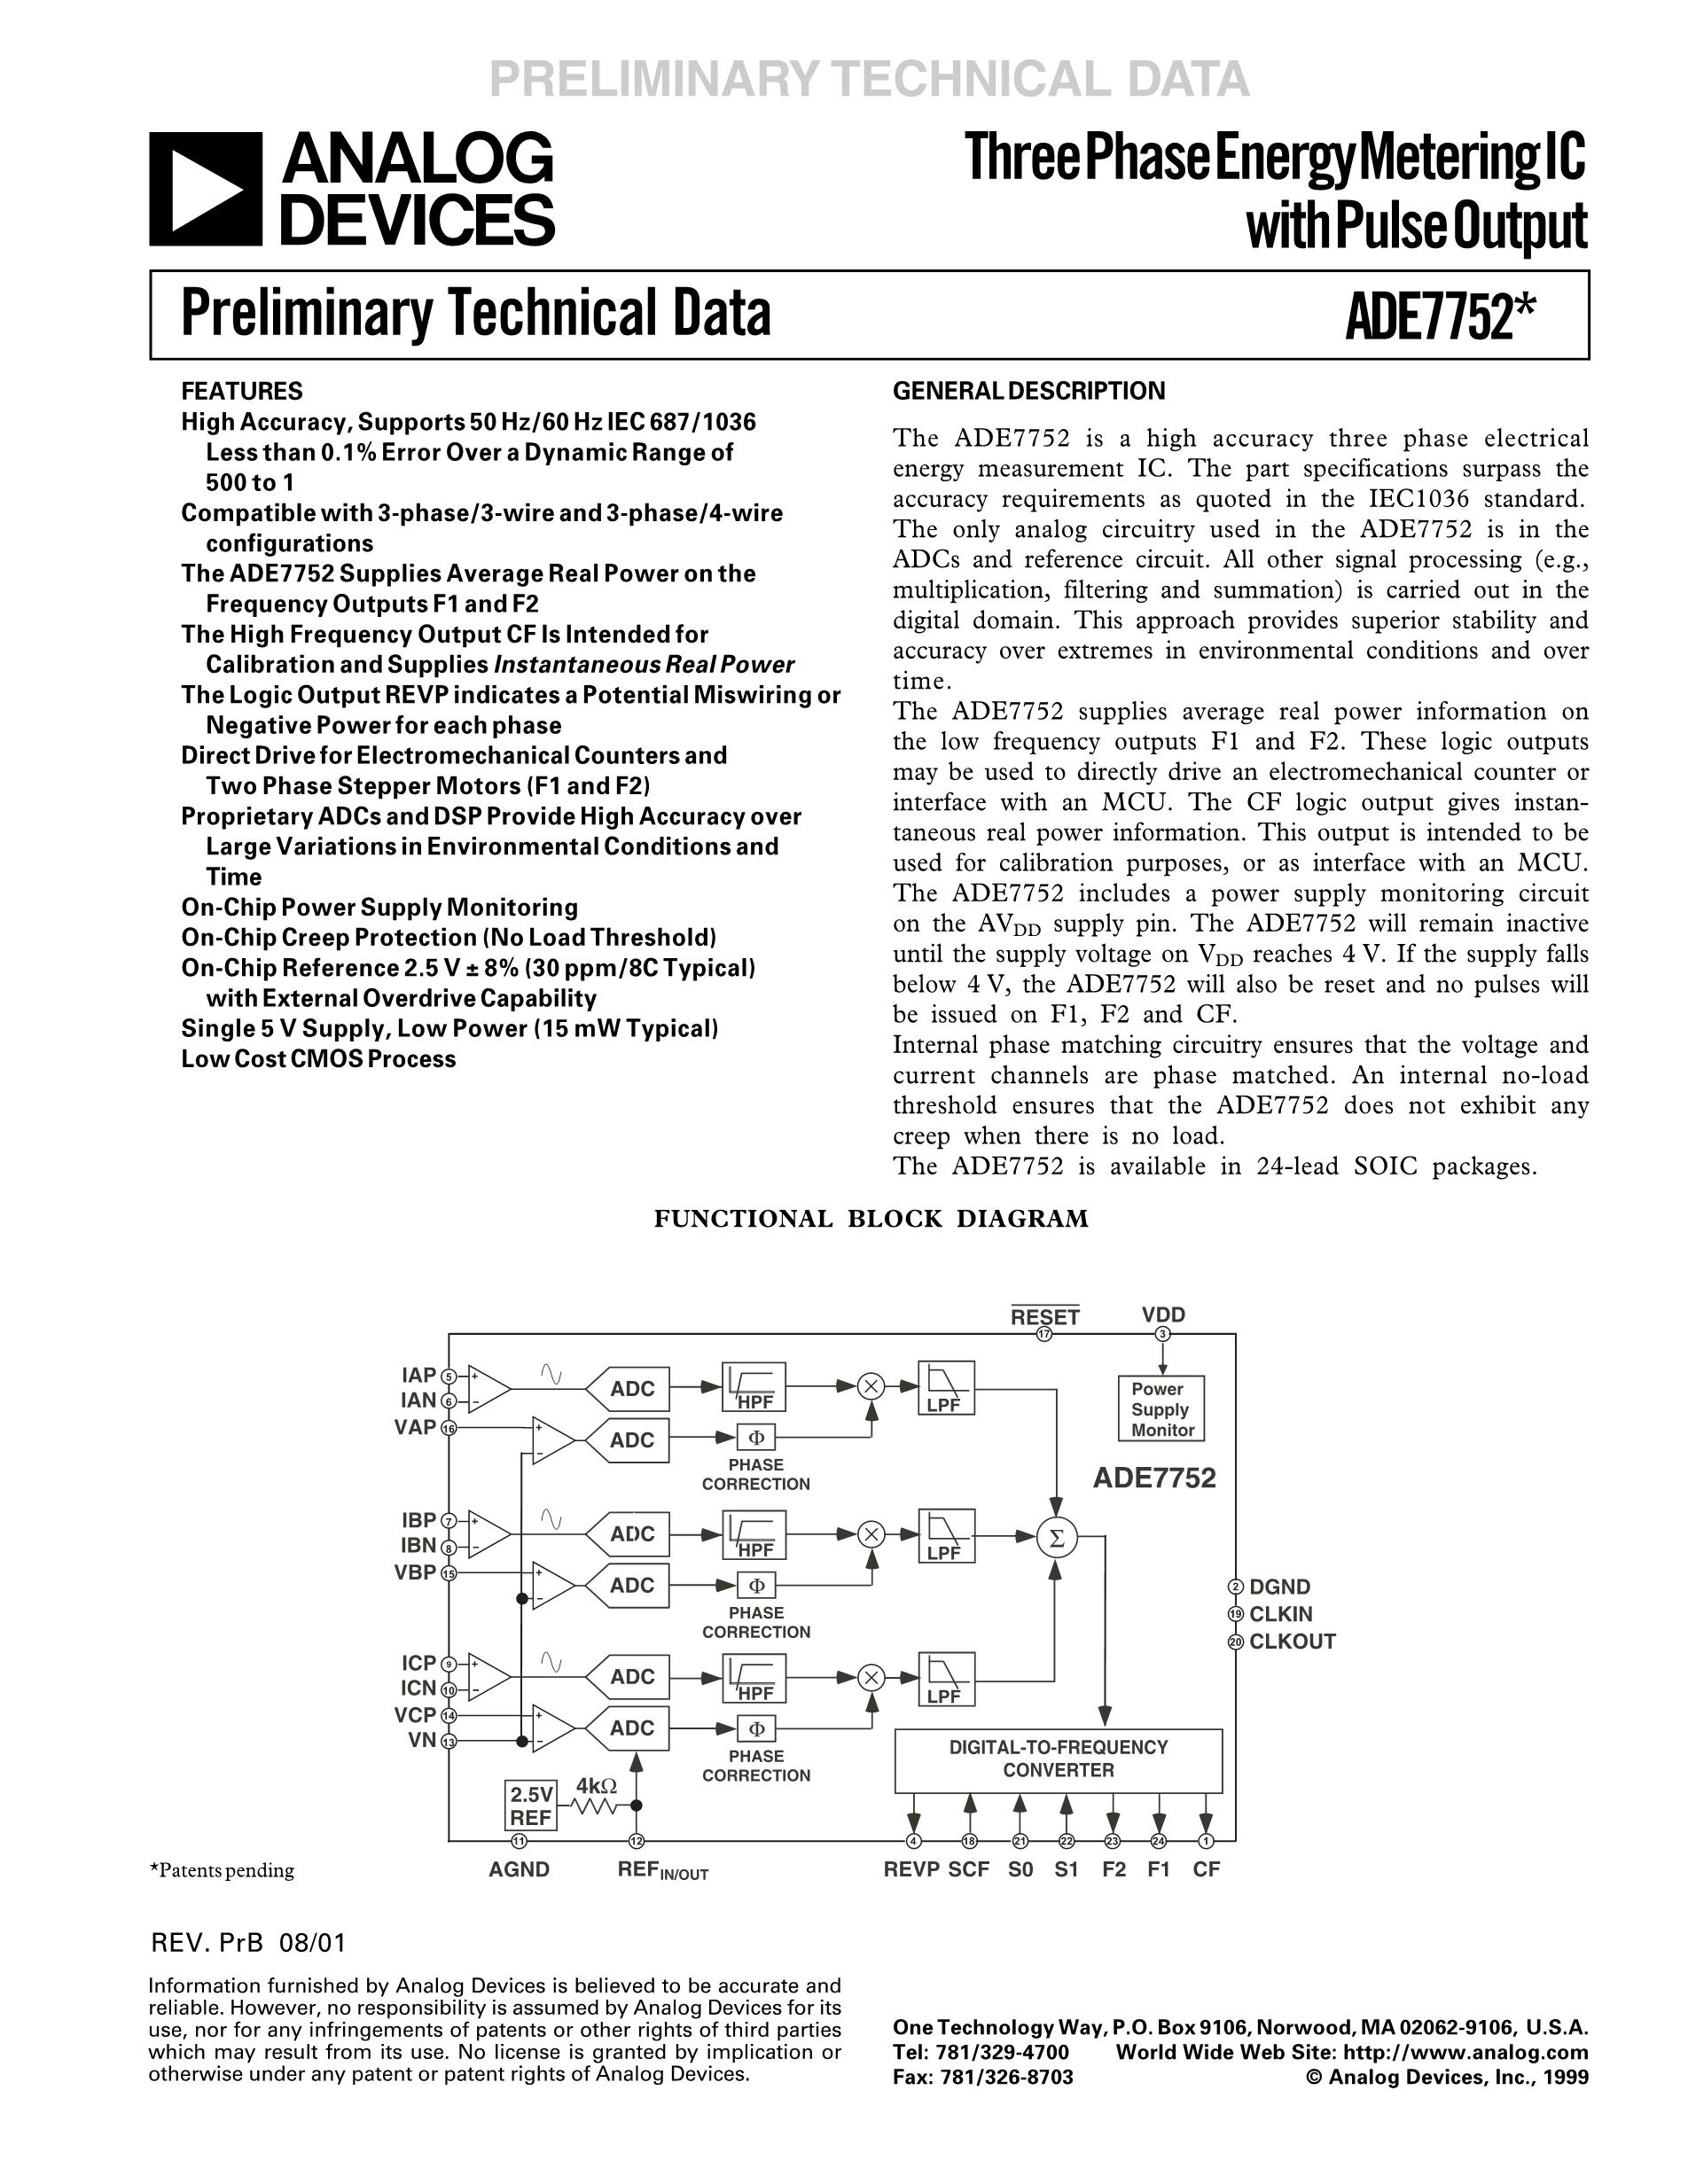 ADE7518ASTZF16-RL's pdf picture 1